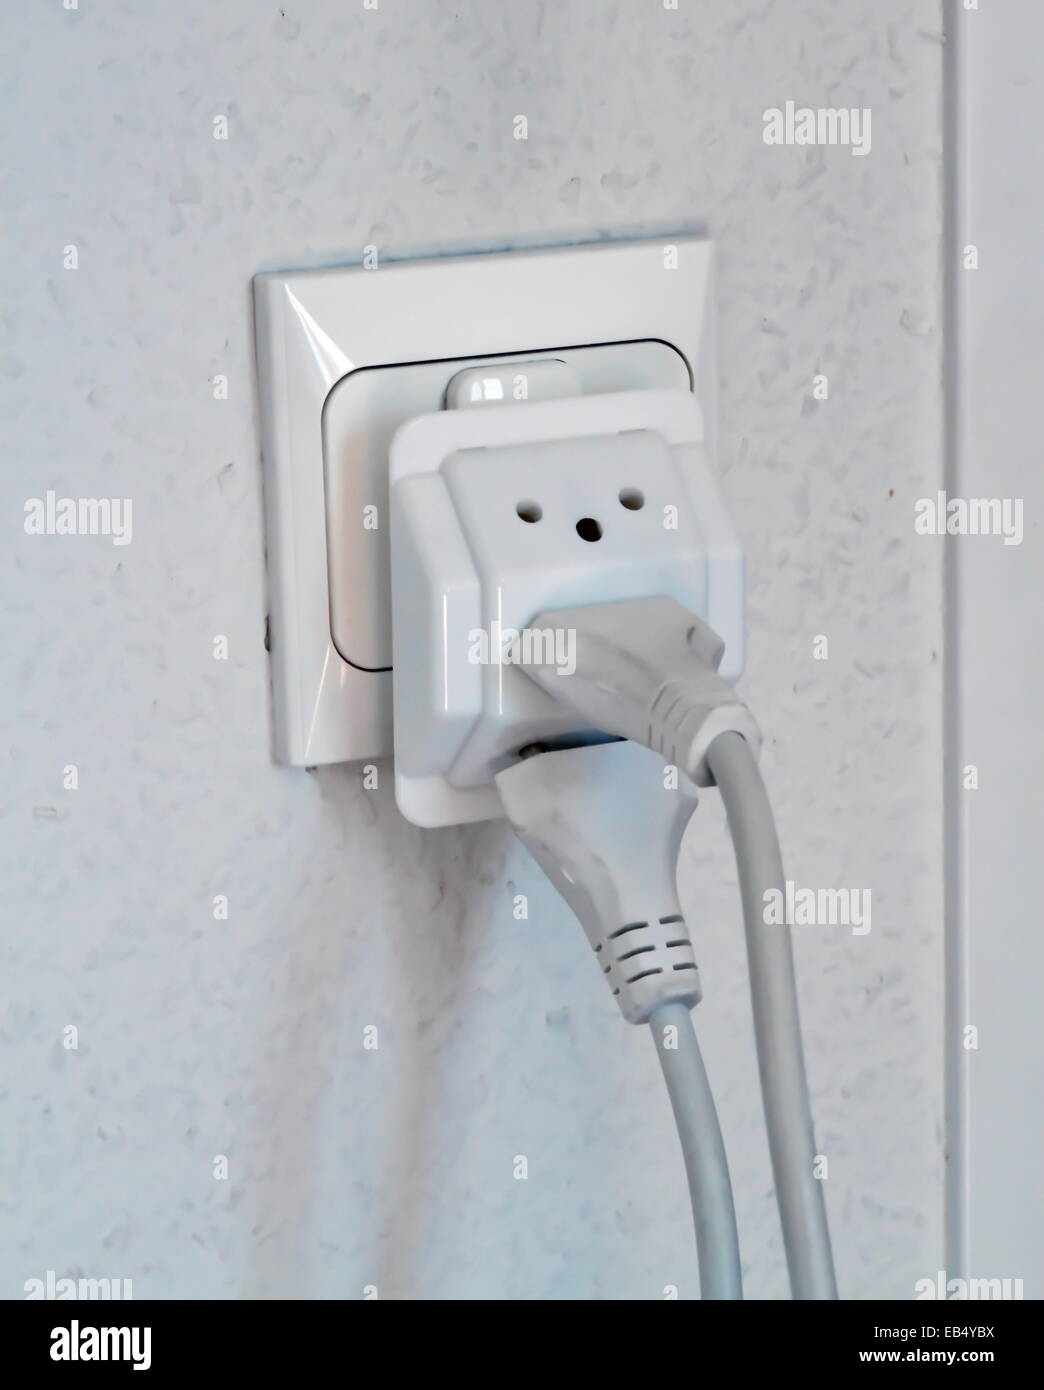 Electrical Wall Outlet Stock Photos & Electrical Wall Outlet Stock ...